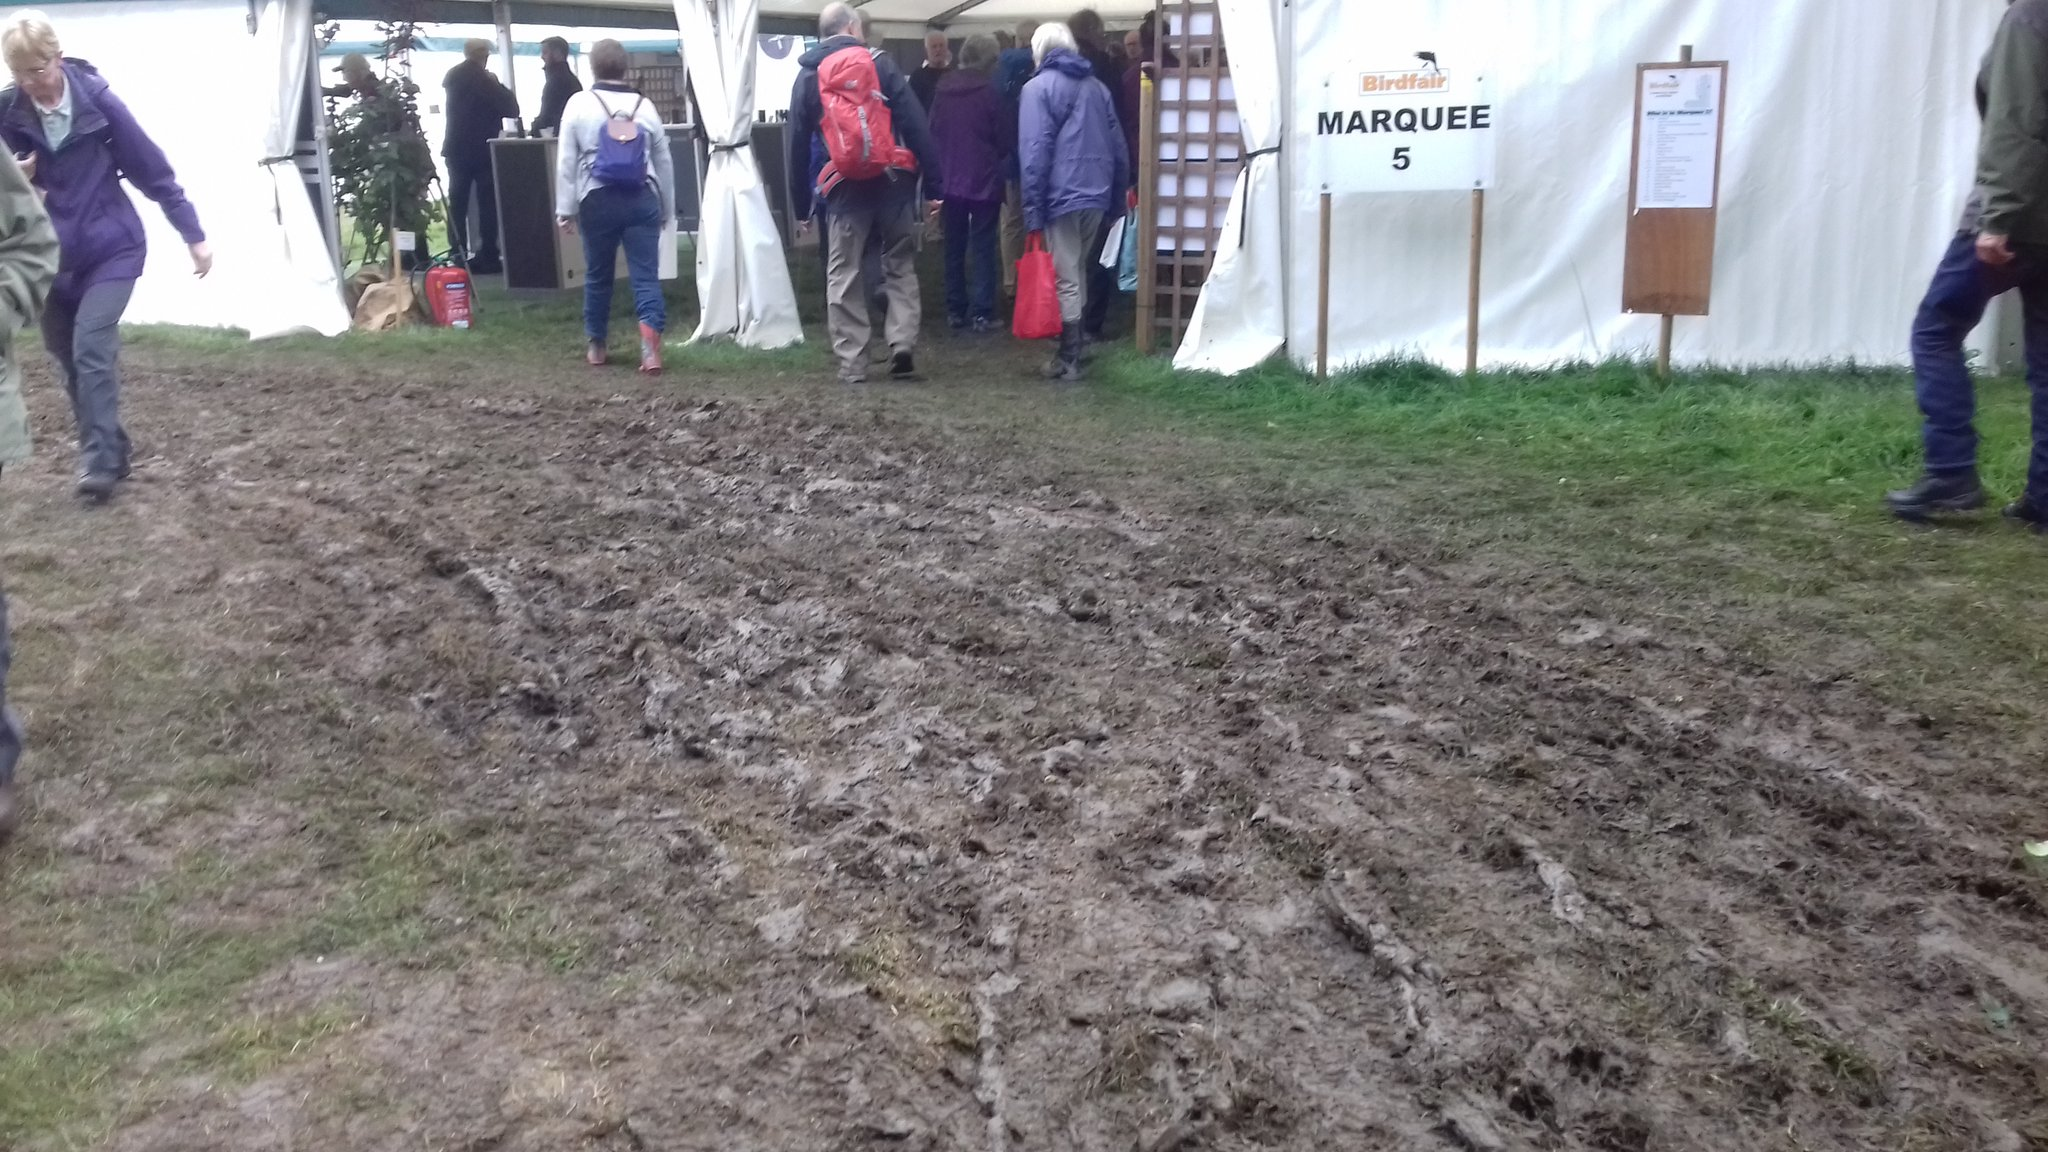 #Birdfair really is the 'Birdwatching Glastonbury! Hope it was less of a slippery mudbath today.... https://t.co/oI6yYQvIxH